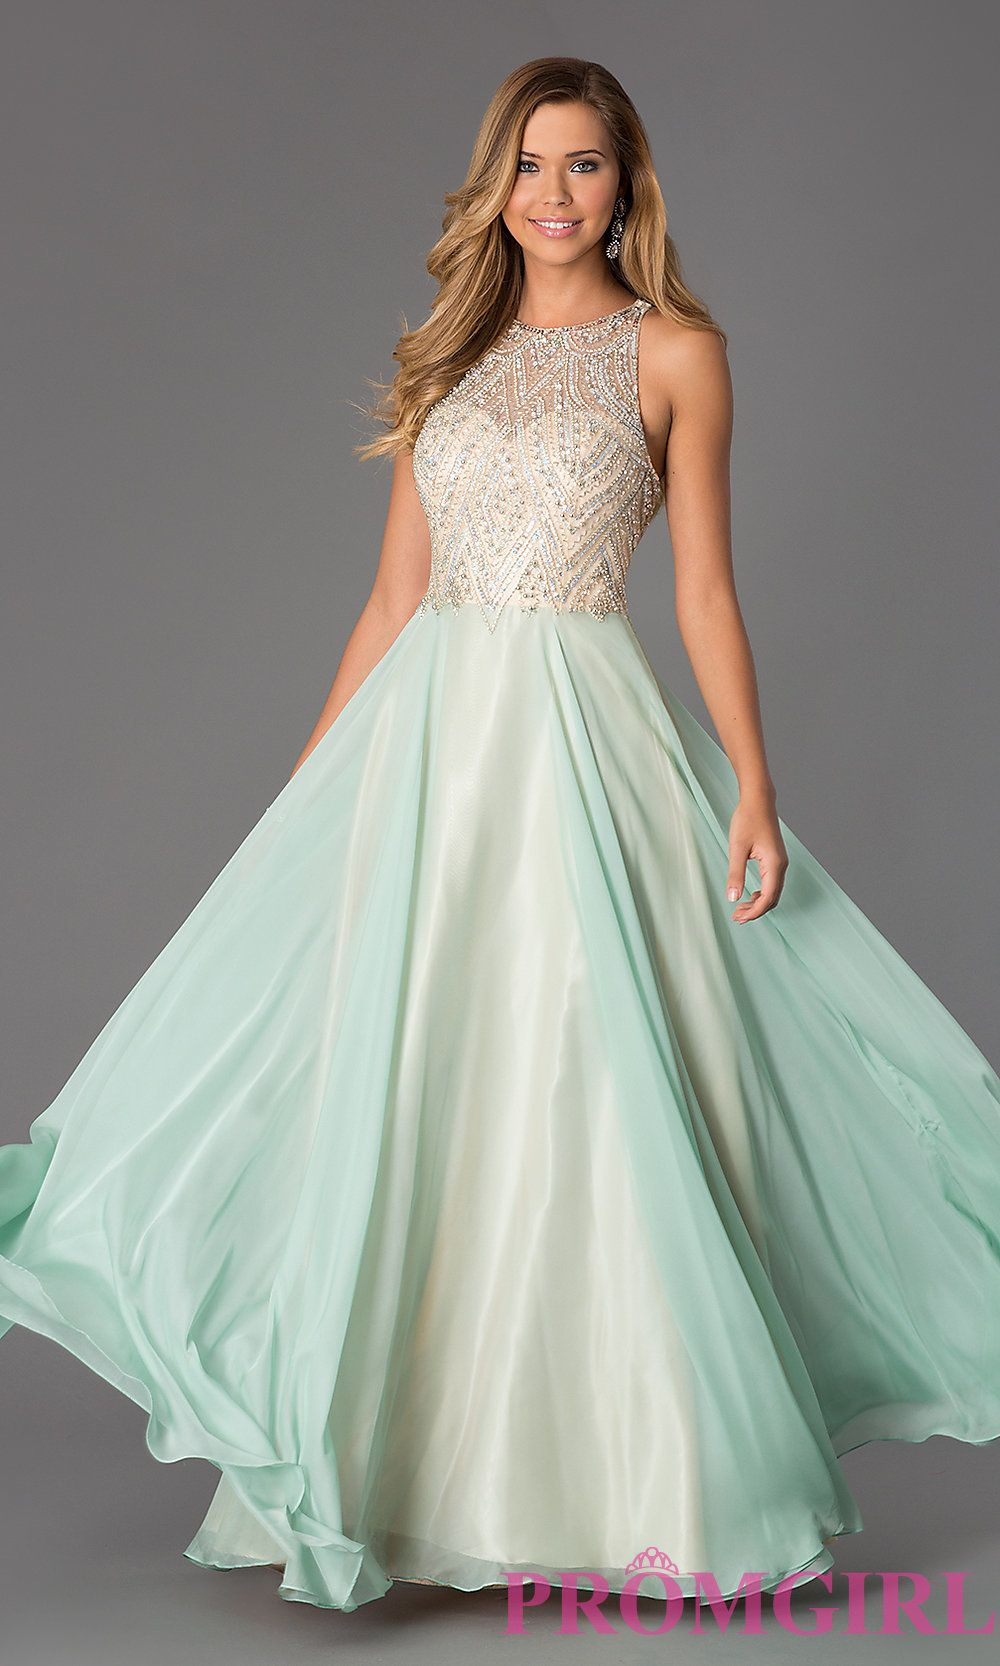 Sleeveless Formal Dresses